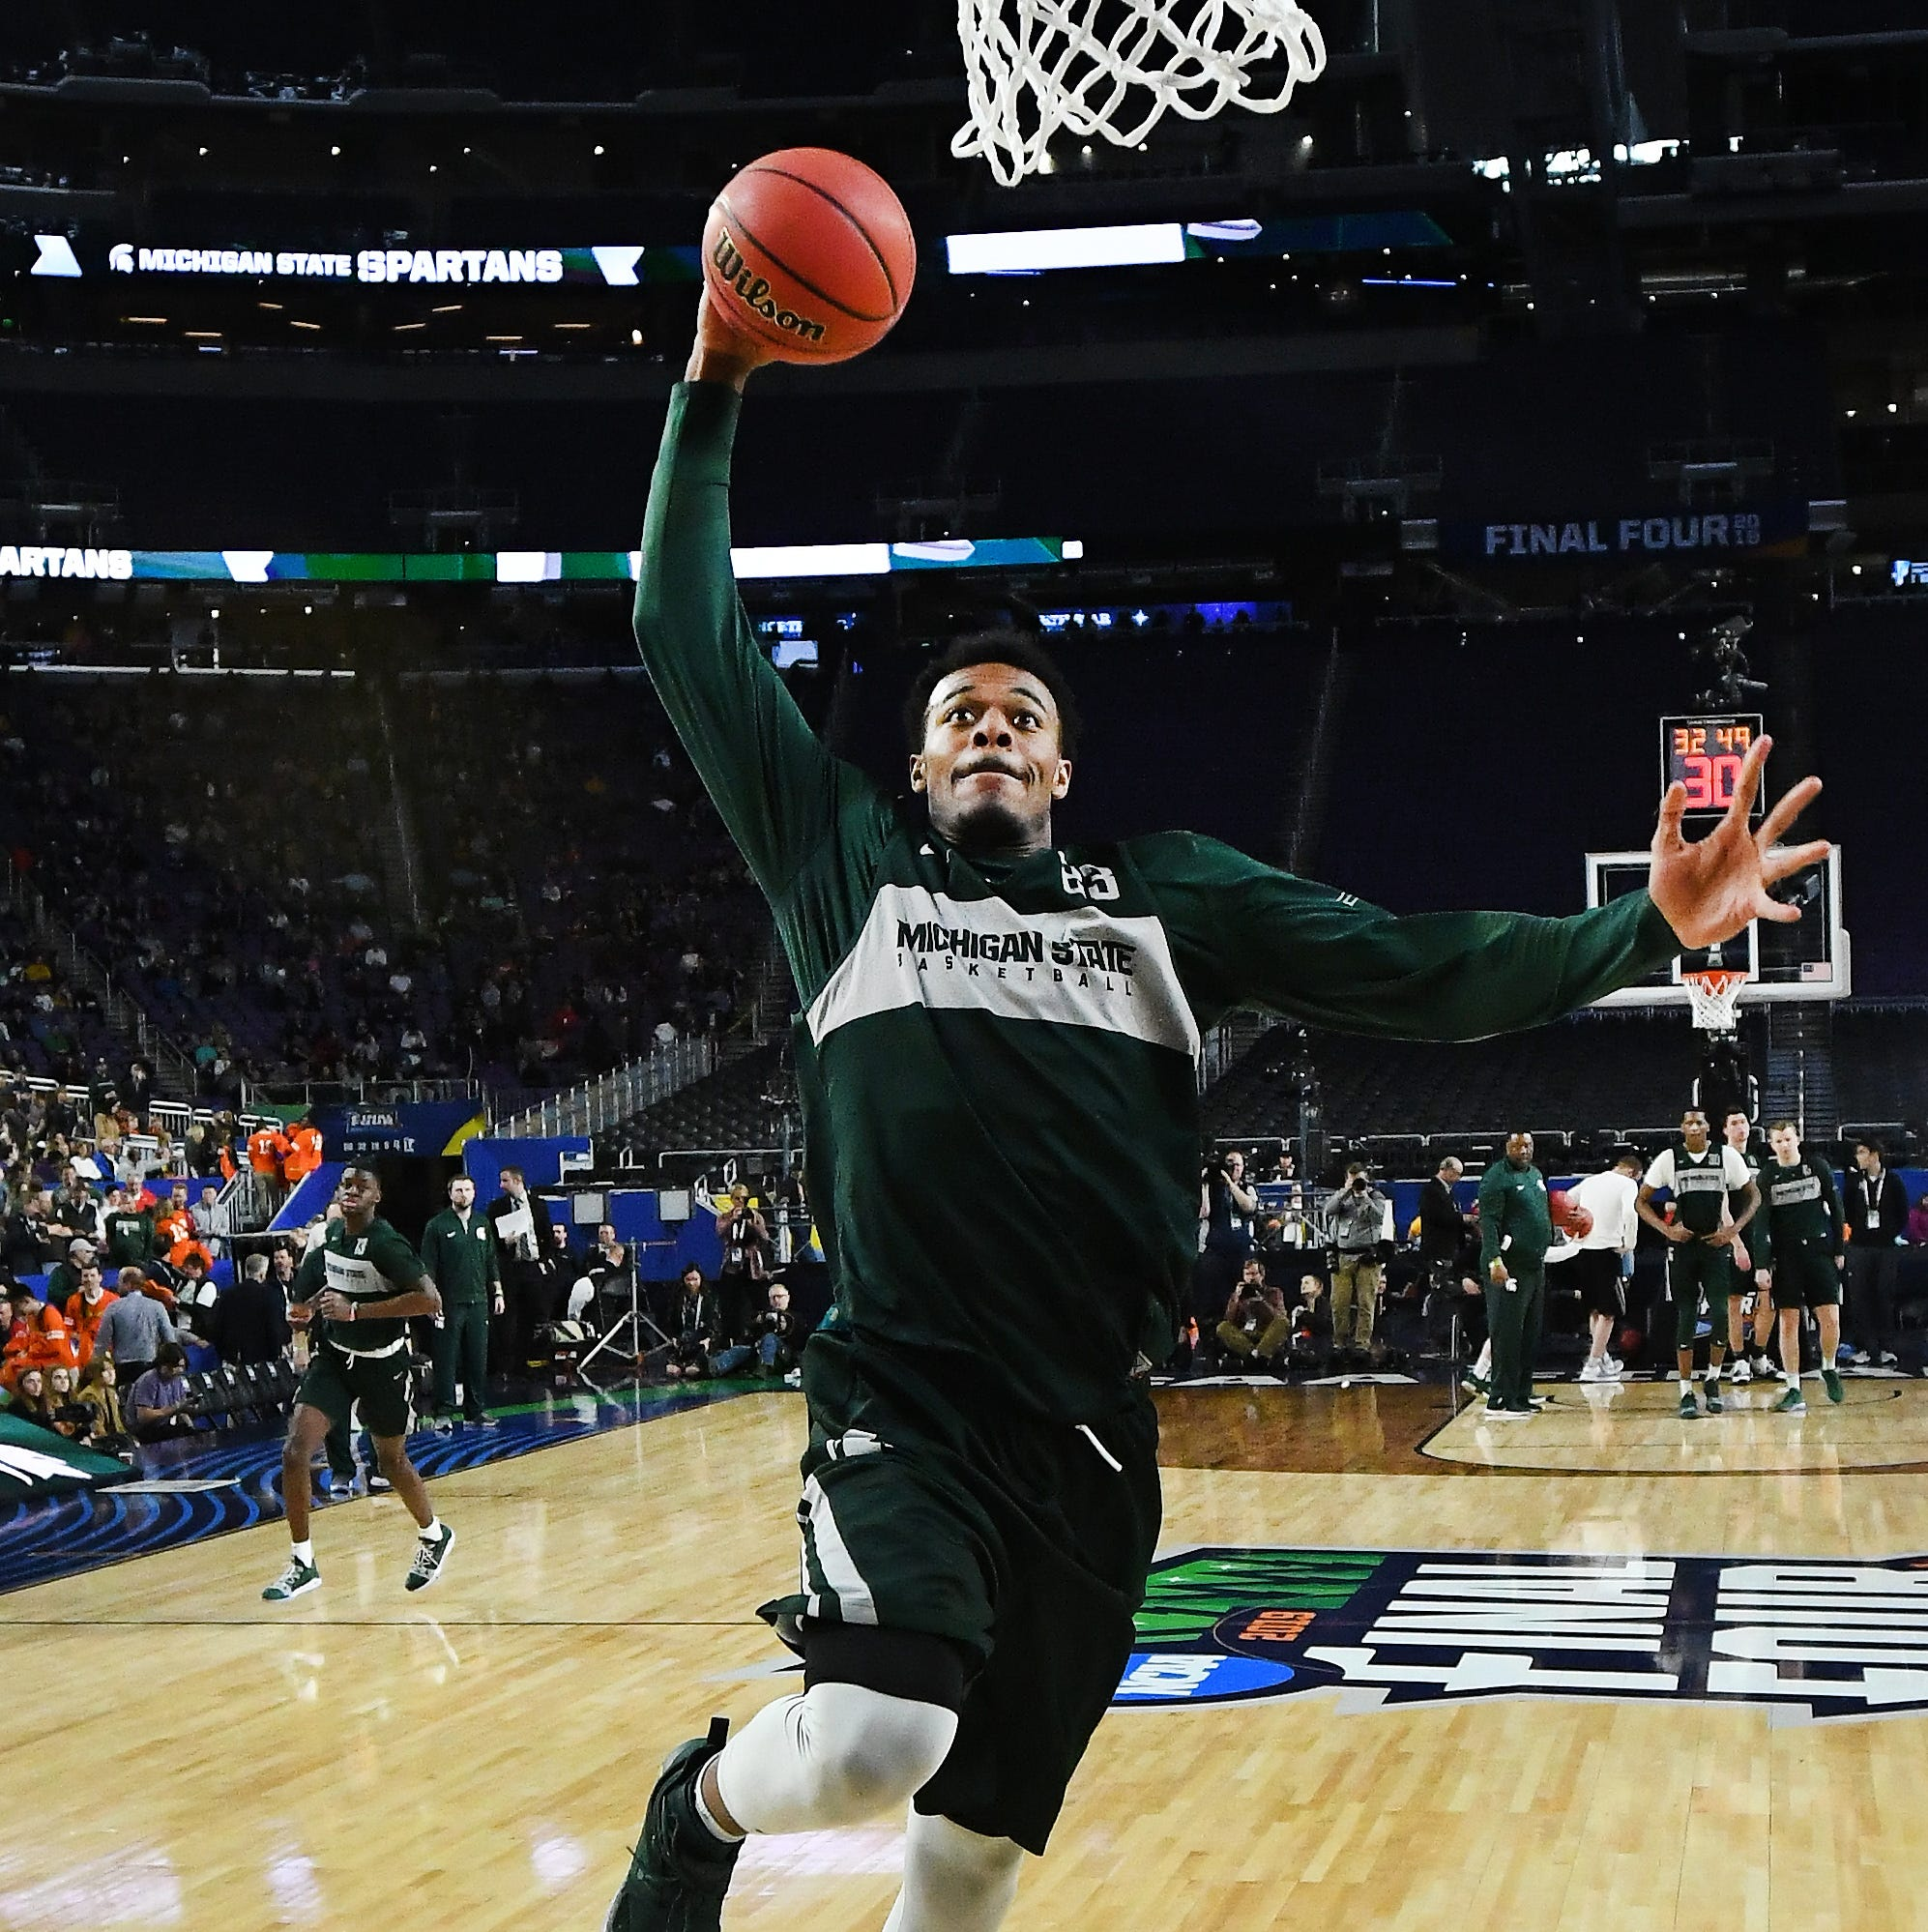 Michigan State players get to grips with Final Four's football stadium setting